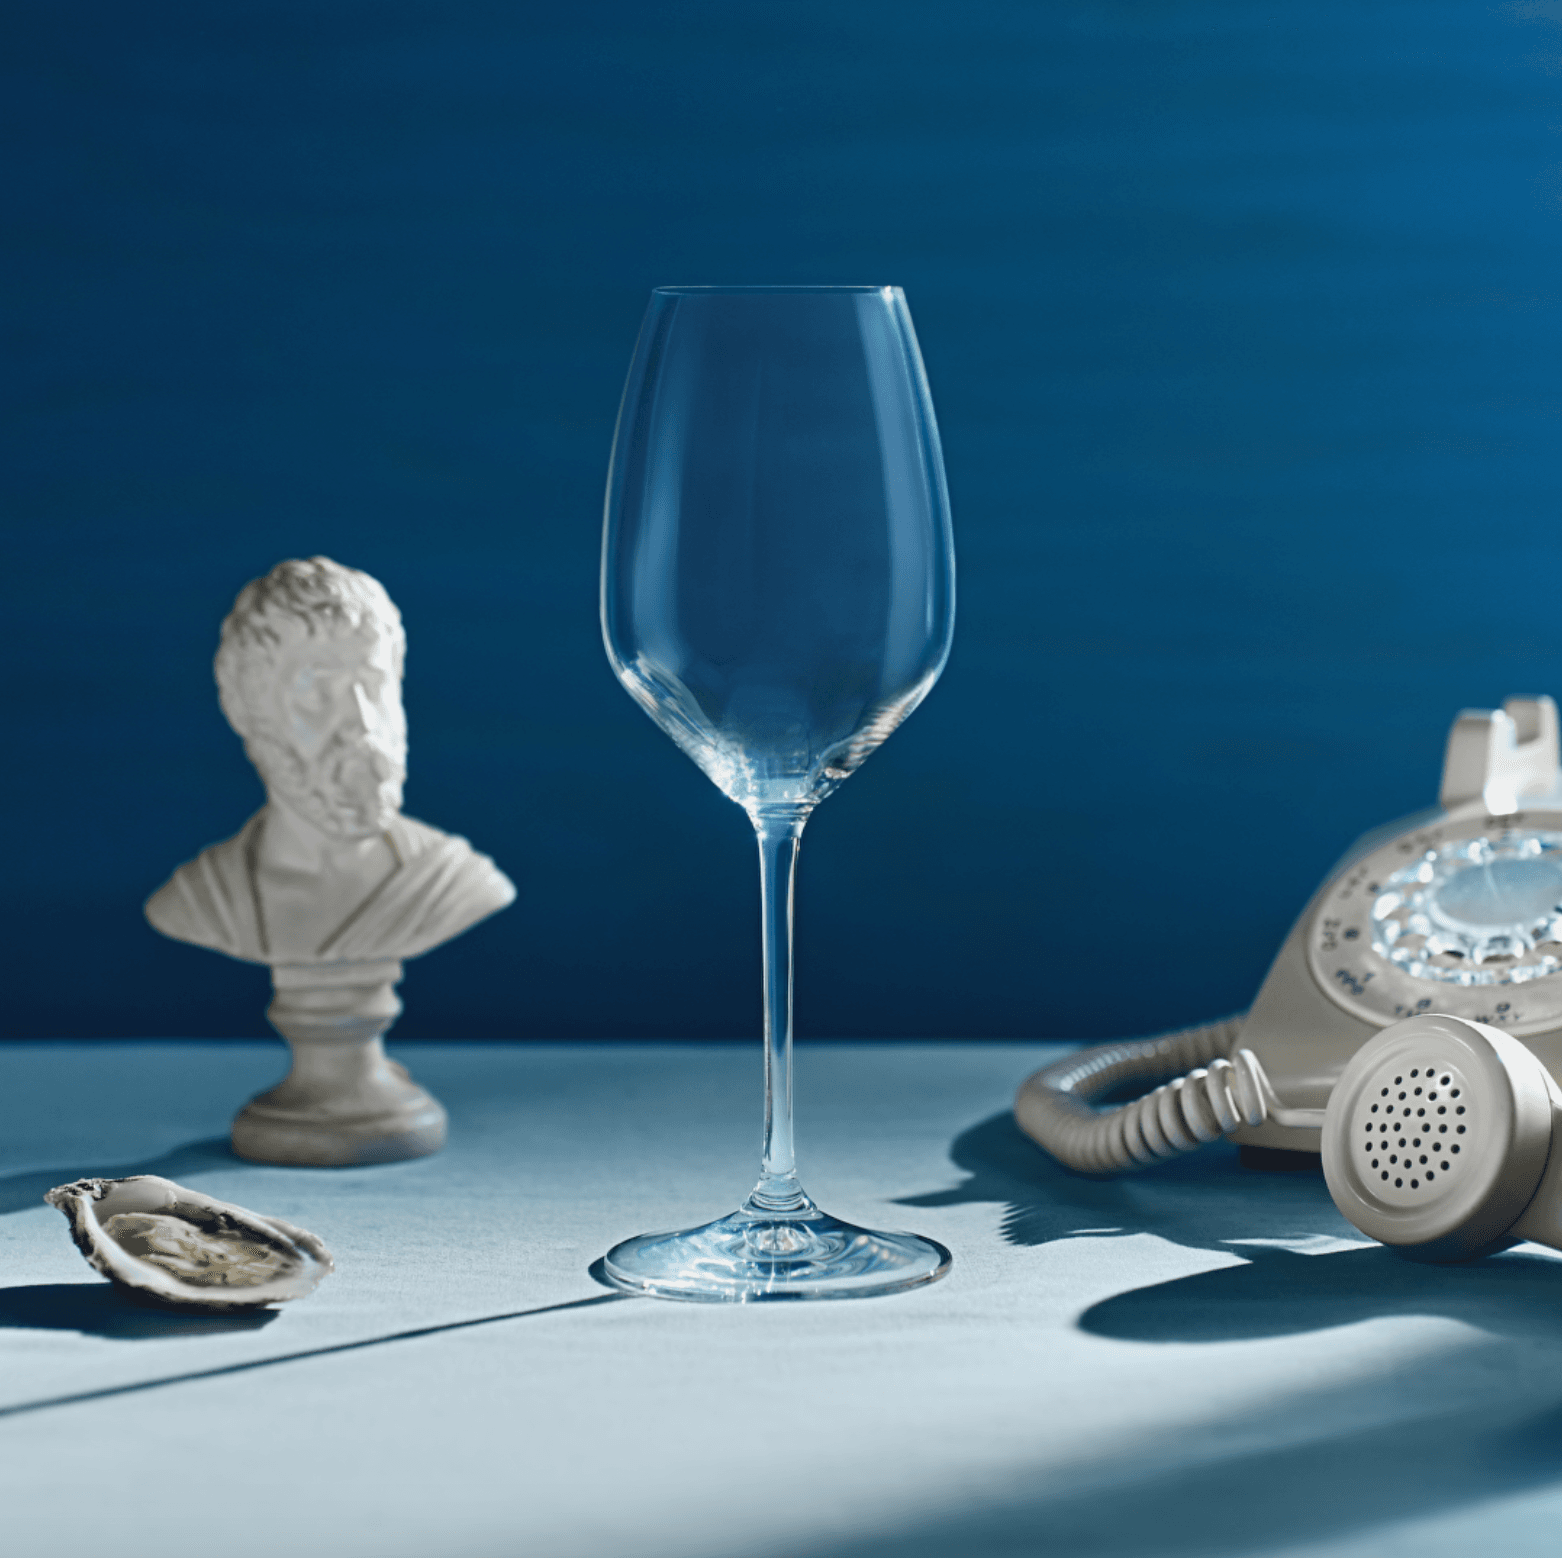 Wine glass in the light on a blue surface and with a blue background. A grecque bust sculpted is behind, a vintage beige phone and an opened oyster.